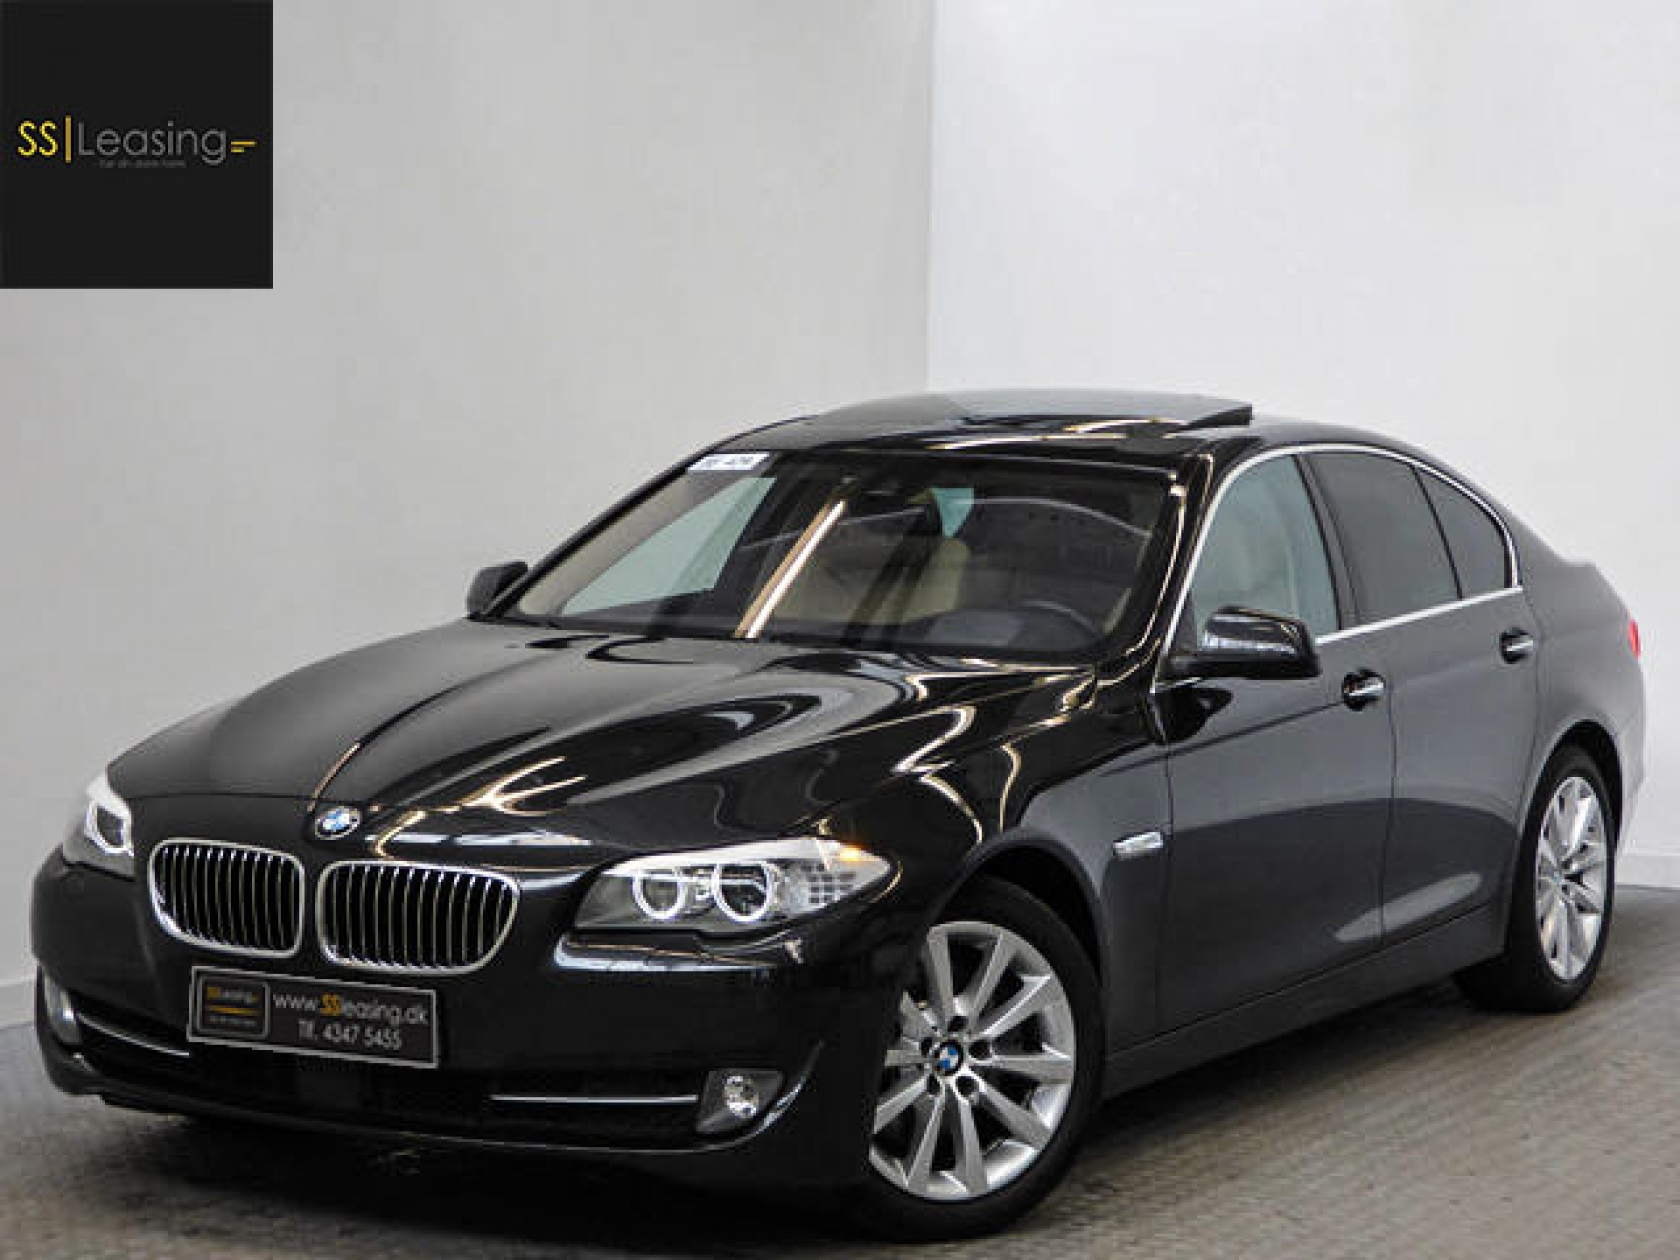 bmw 530 2013 3.0 flexleasing - Leasingoffer